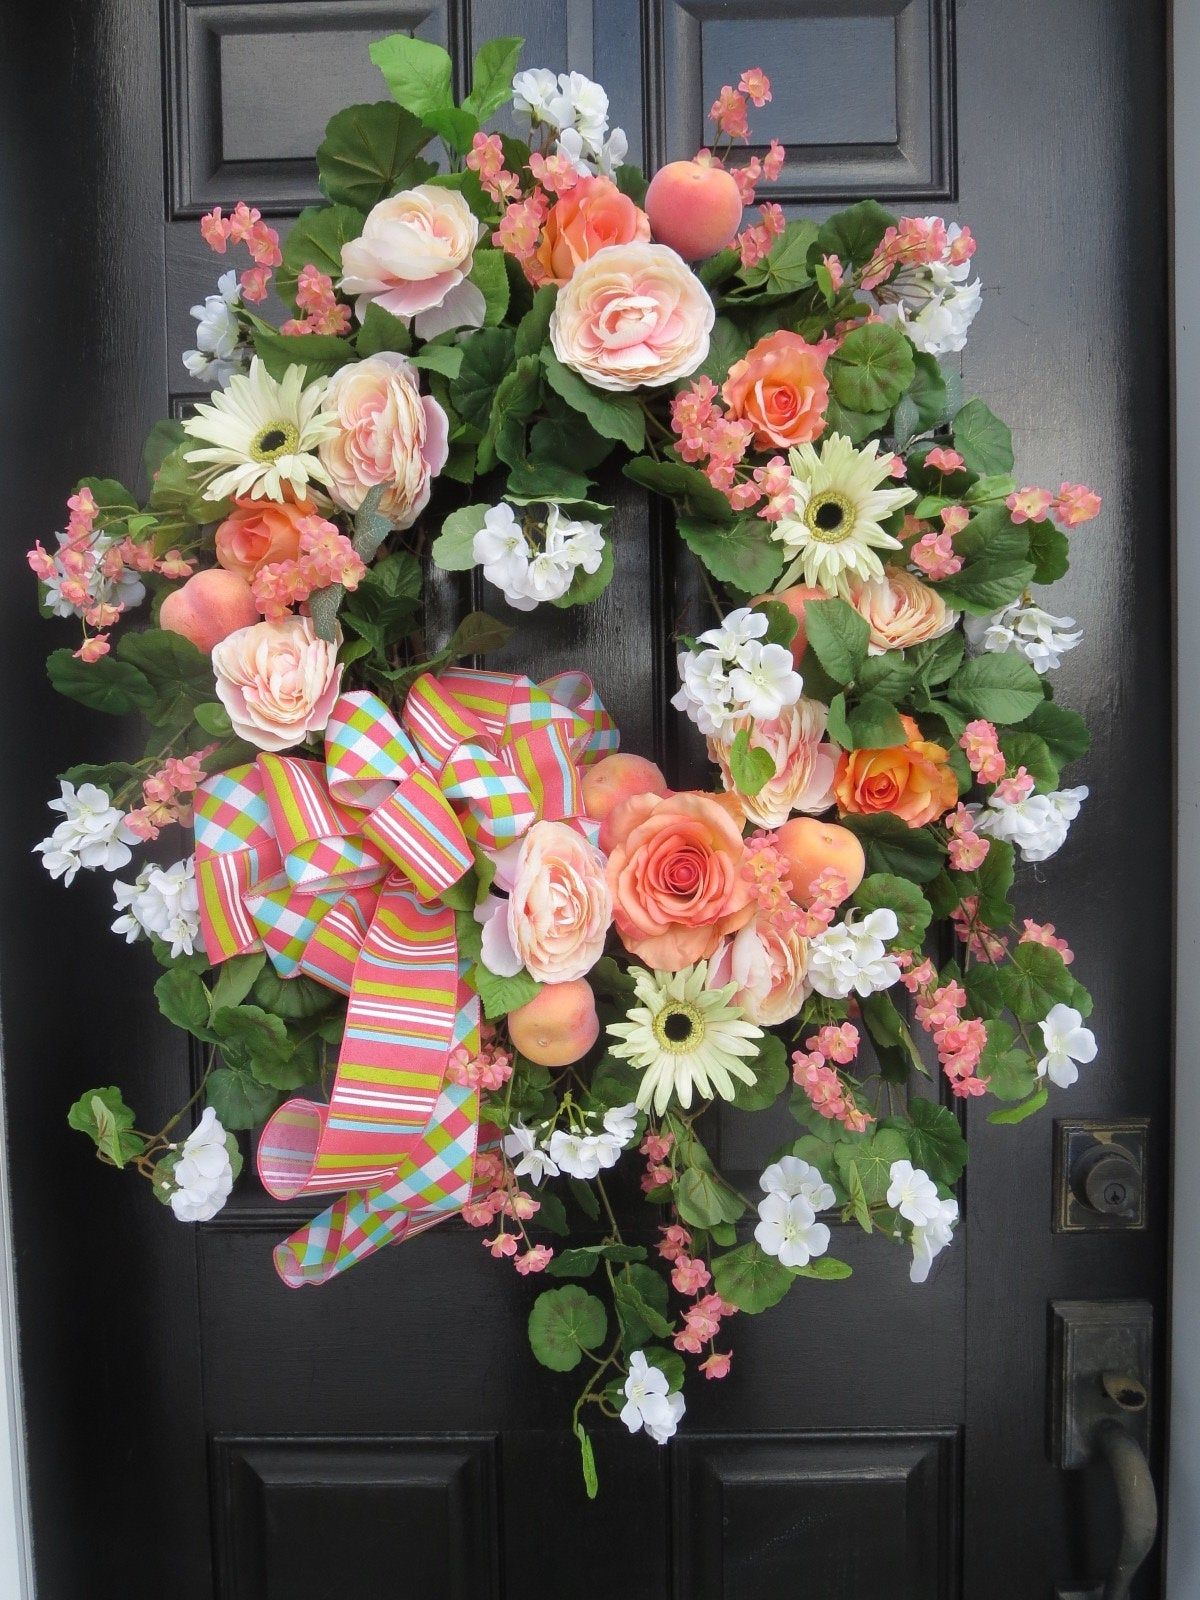 Photo of Summer Wreath for Front Door, Spring Door Wreath, Door Decor, Mother's Day Gift, Geraniums, Peaches, Shabby Chic, French Country Wreaths